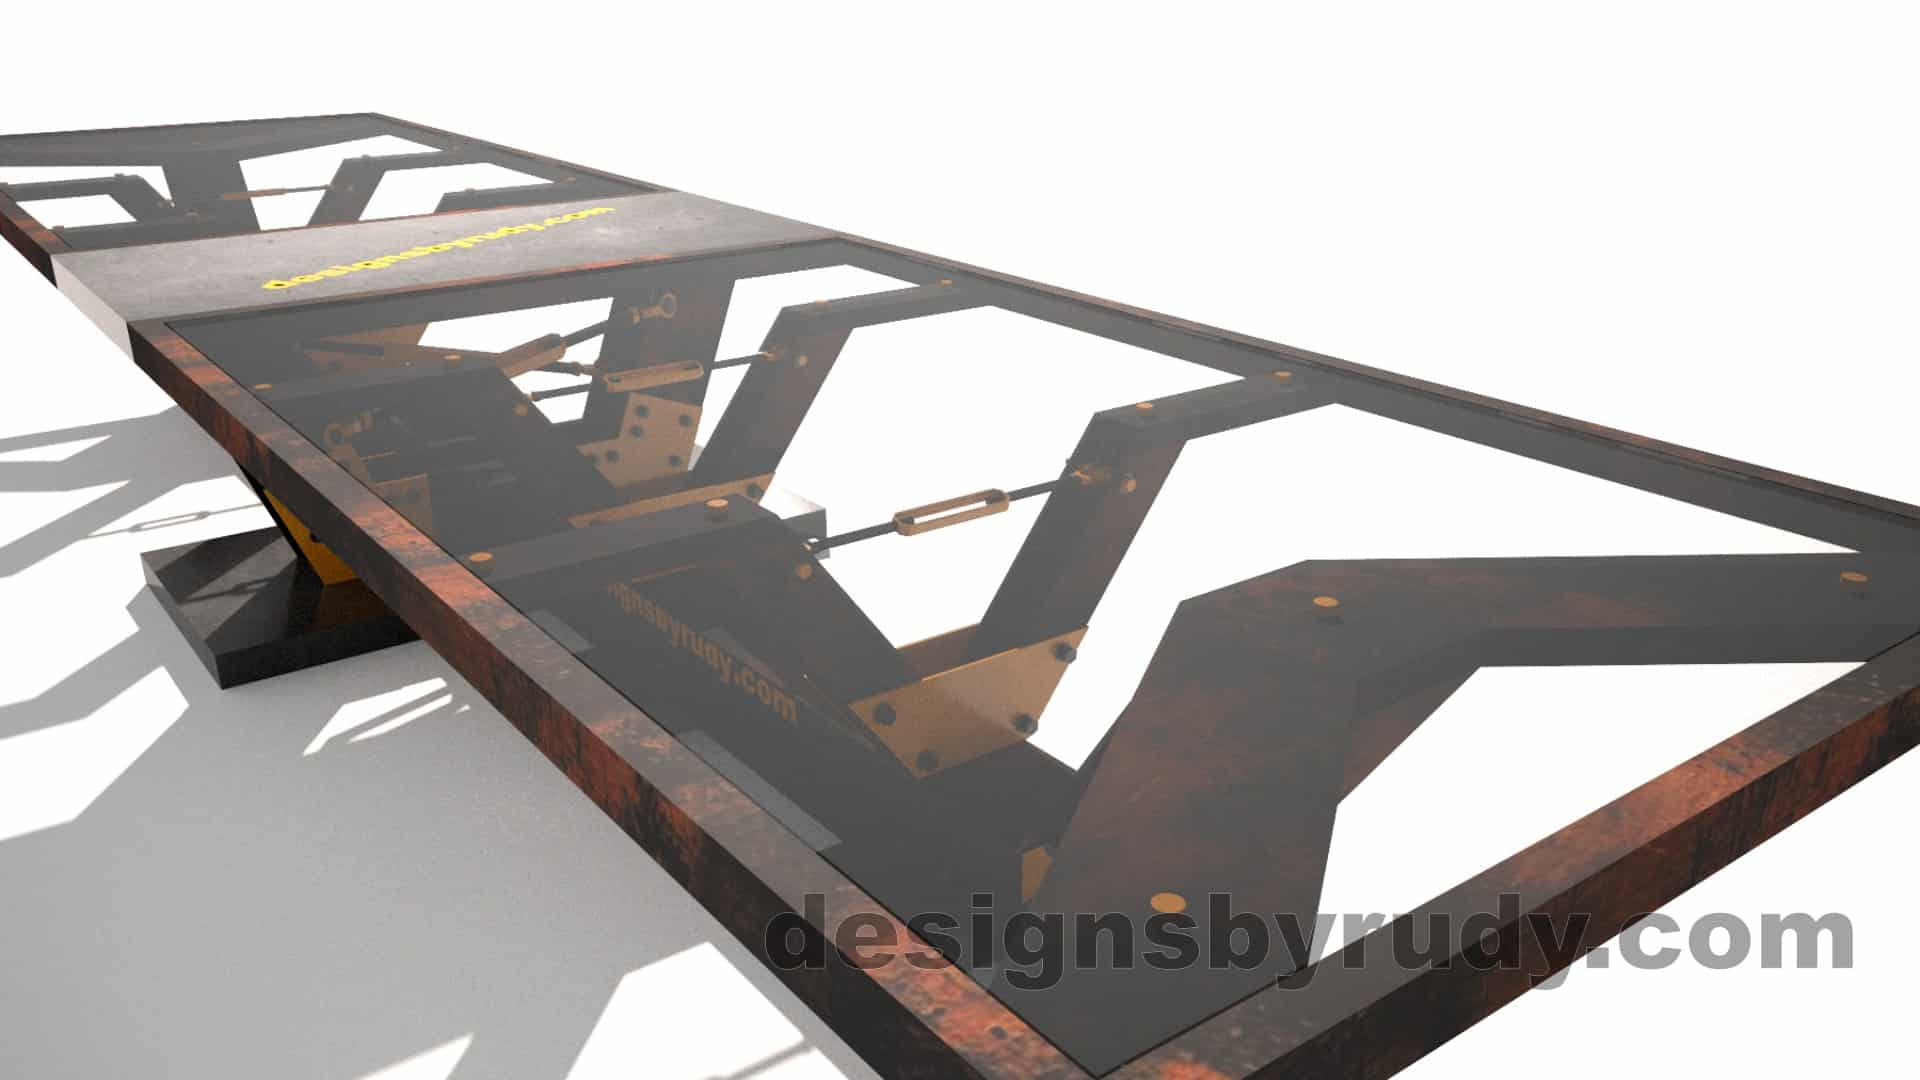 Glass, steel, concrete conference table design by Designs by Rudy 12